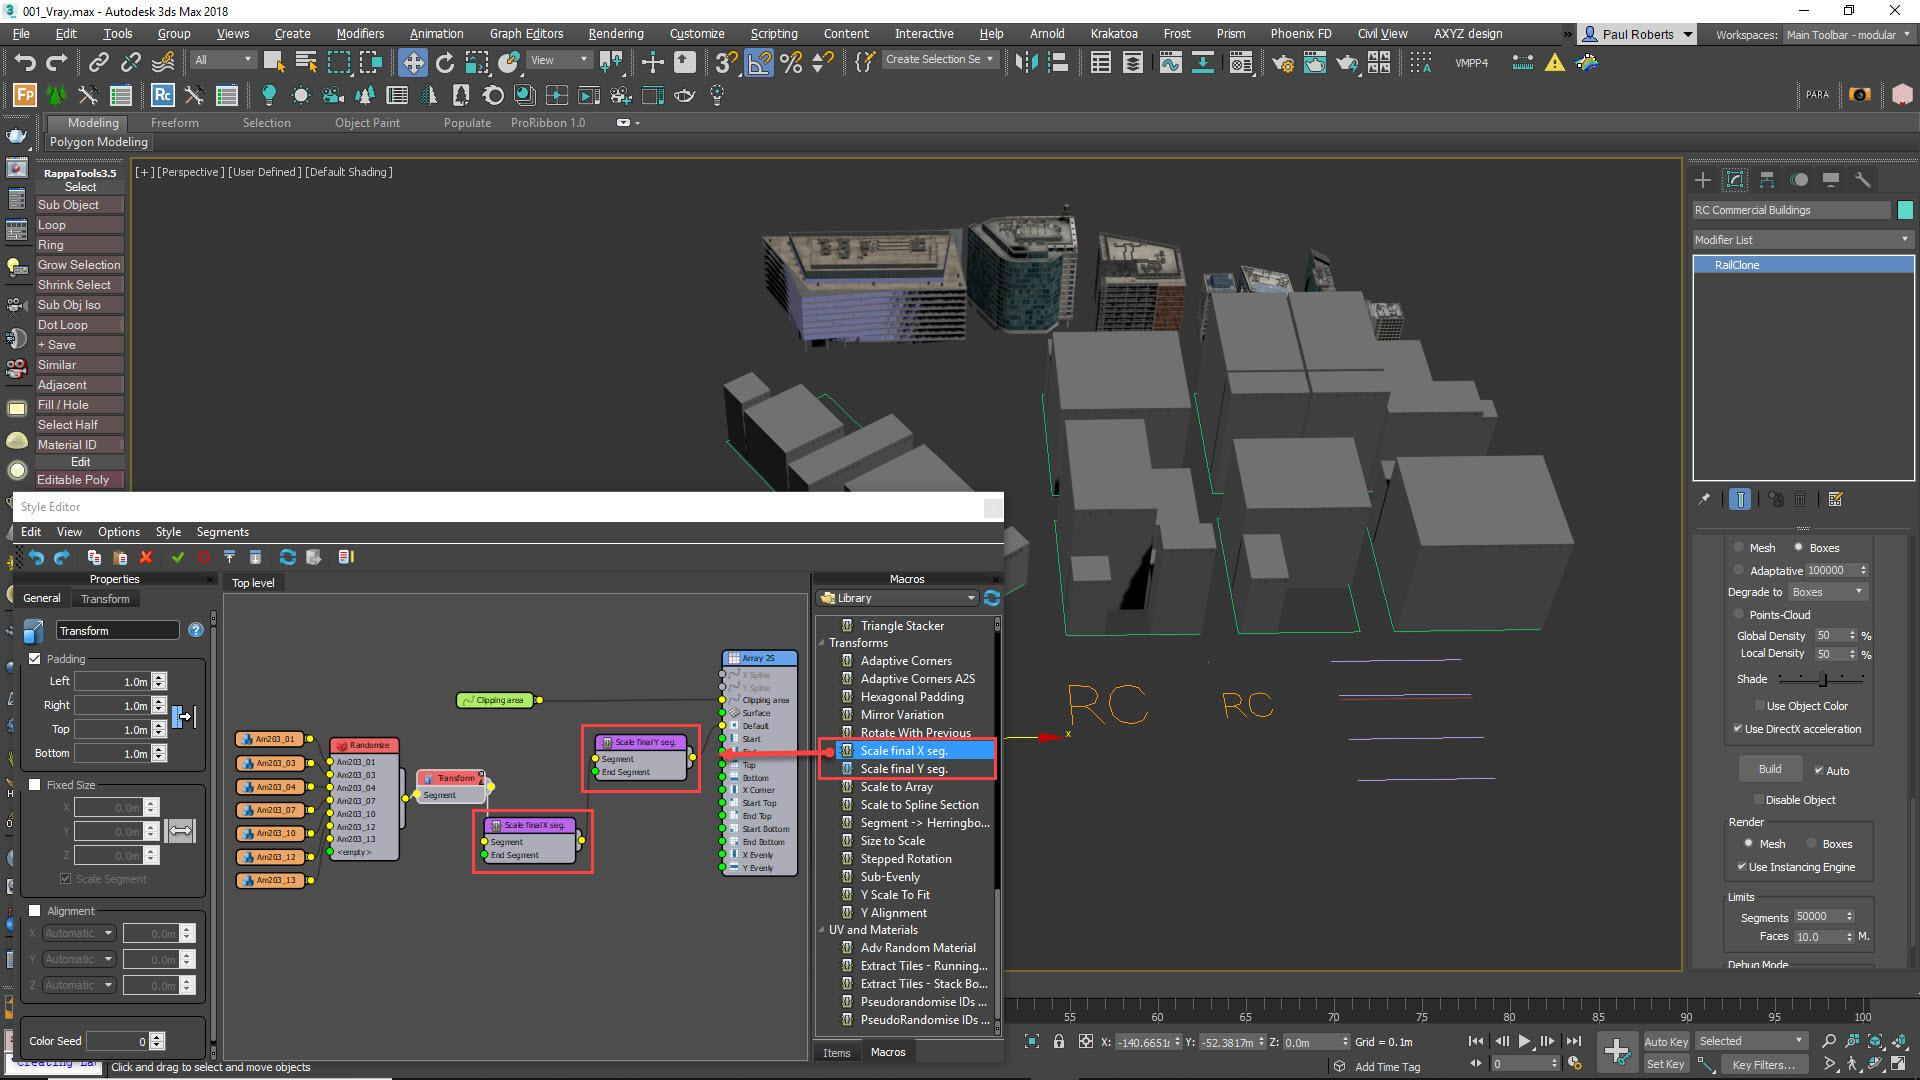 Creating Cityscapes with RailClone in 3ds Max